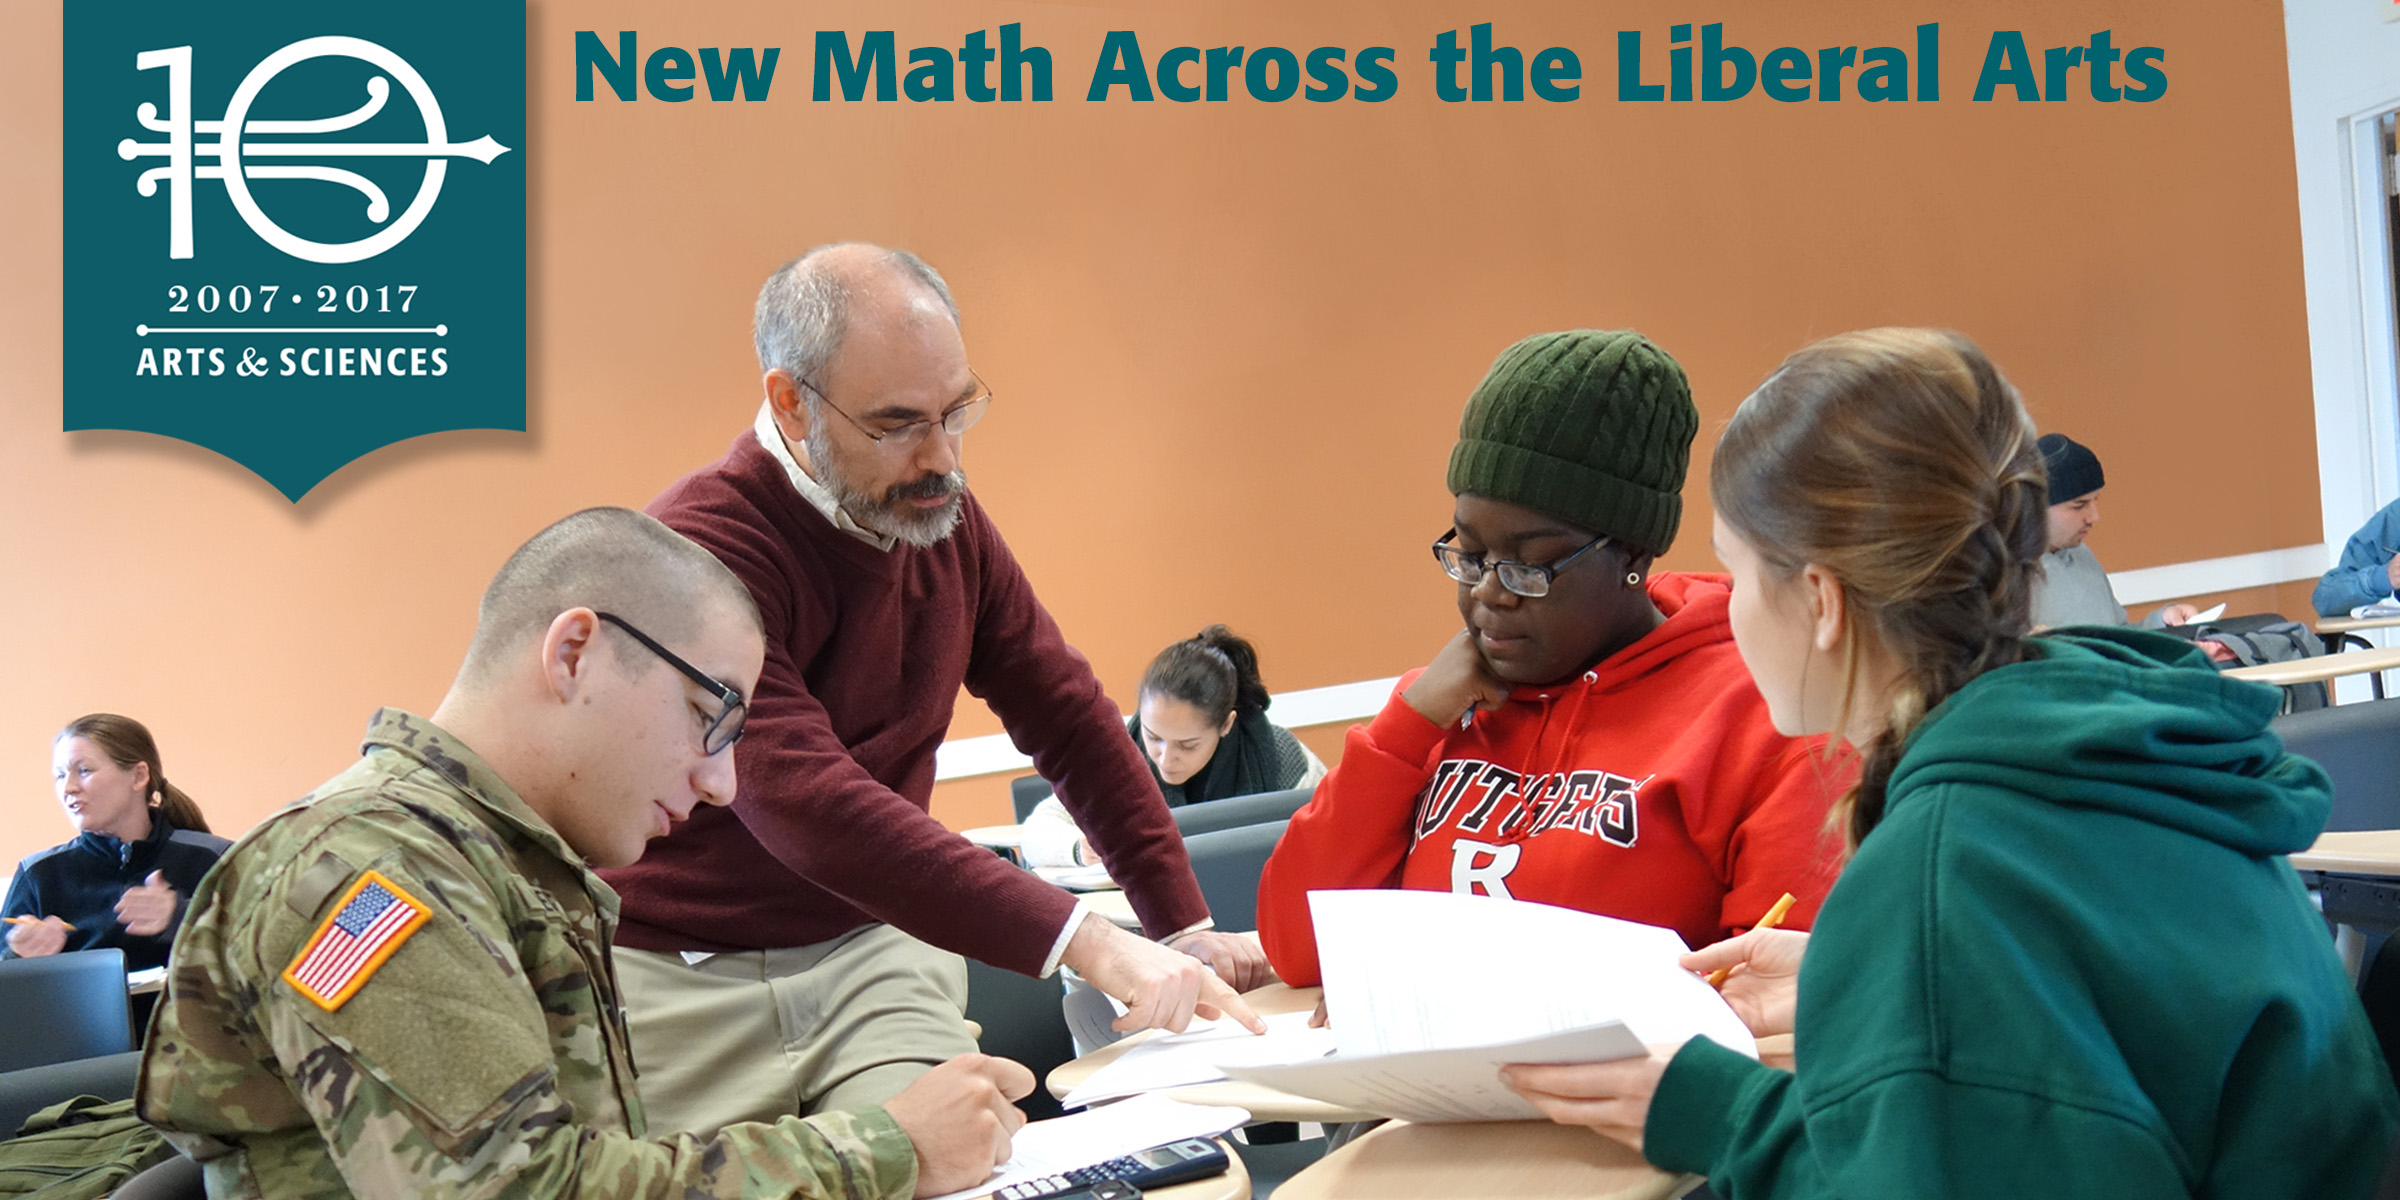 New Math Across the Liberal Arts